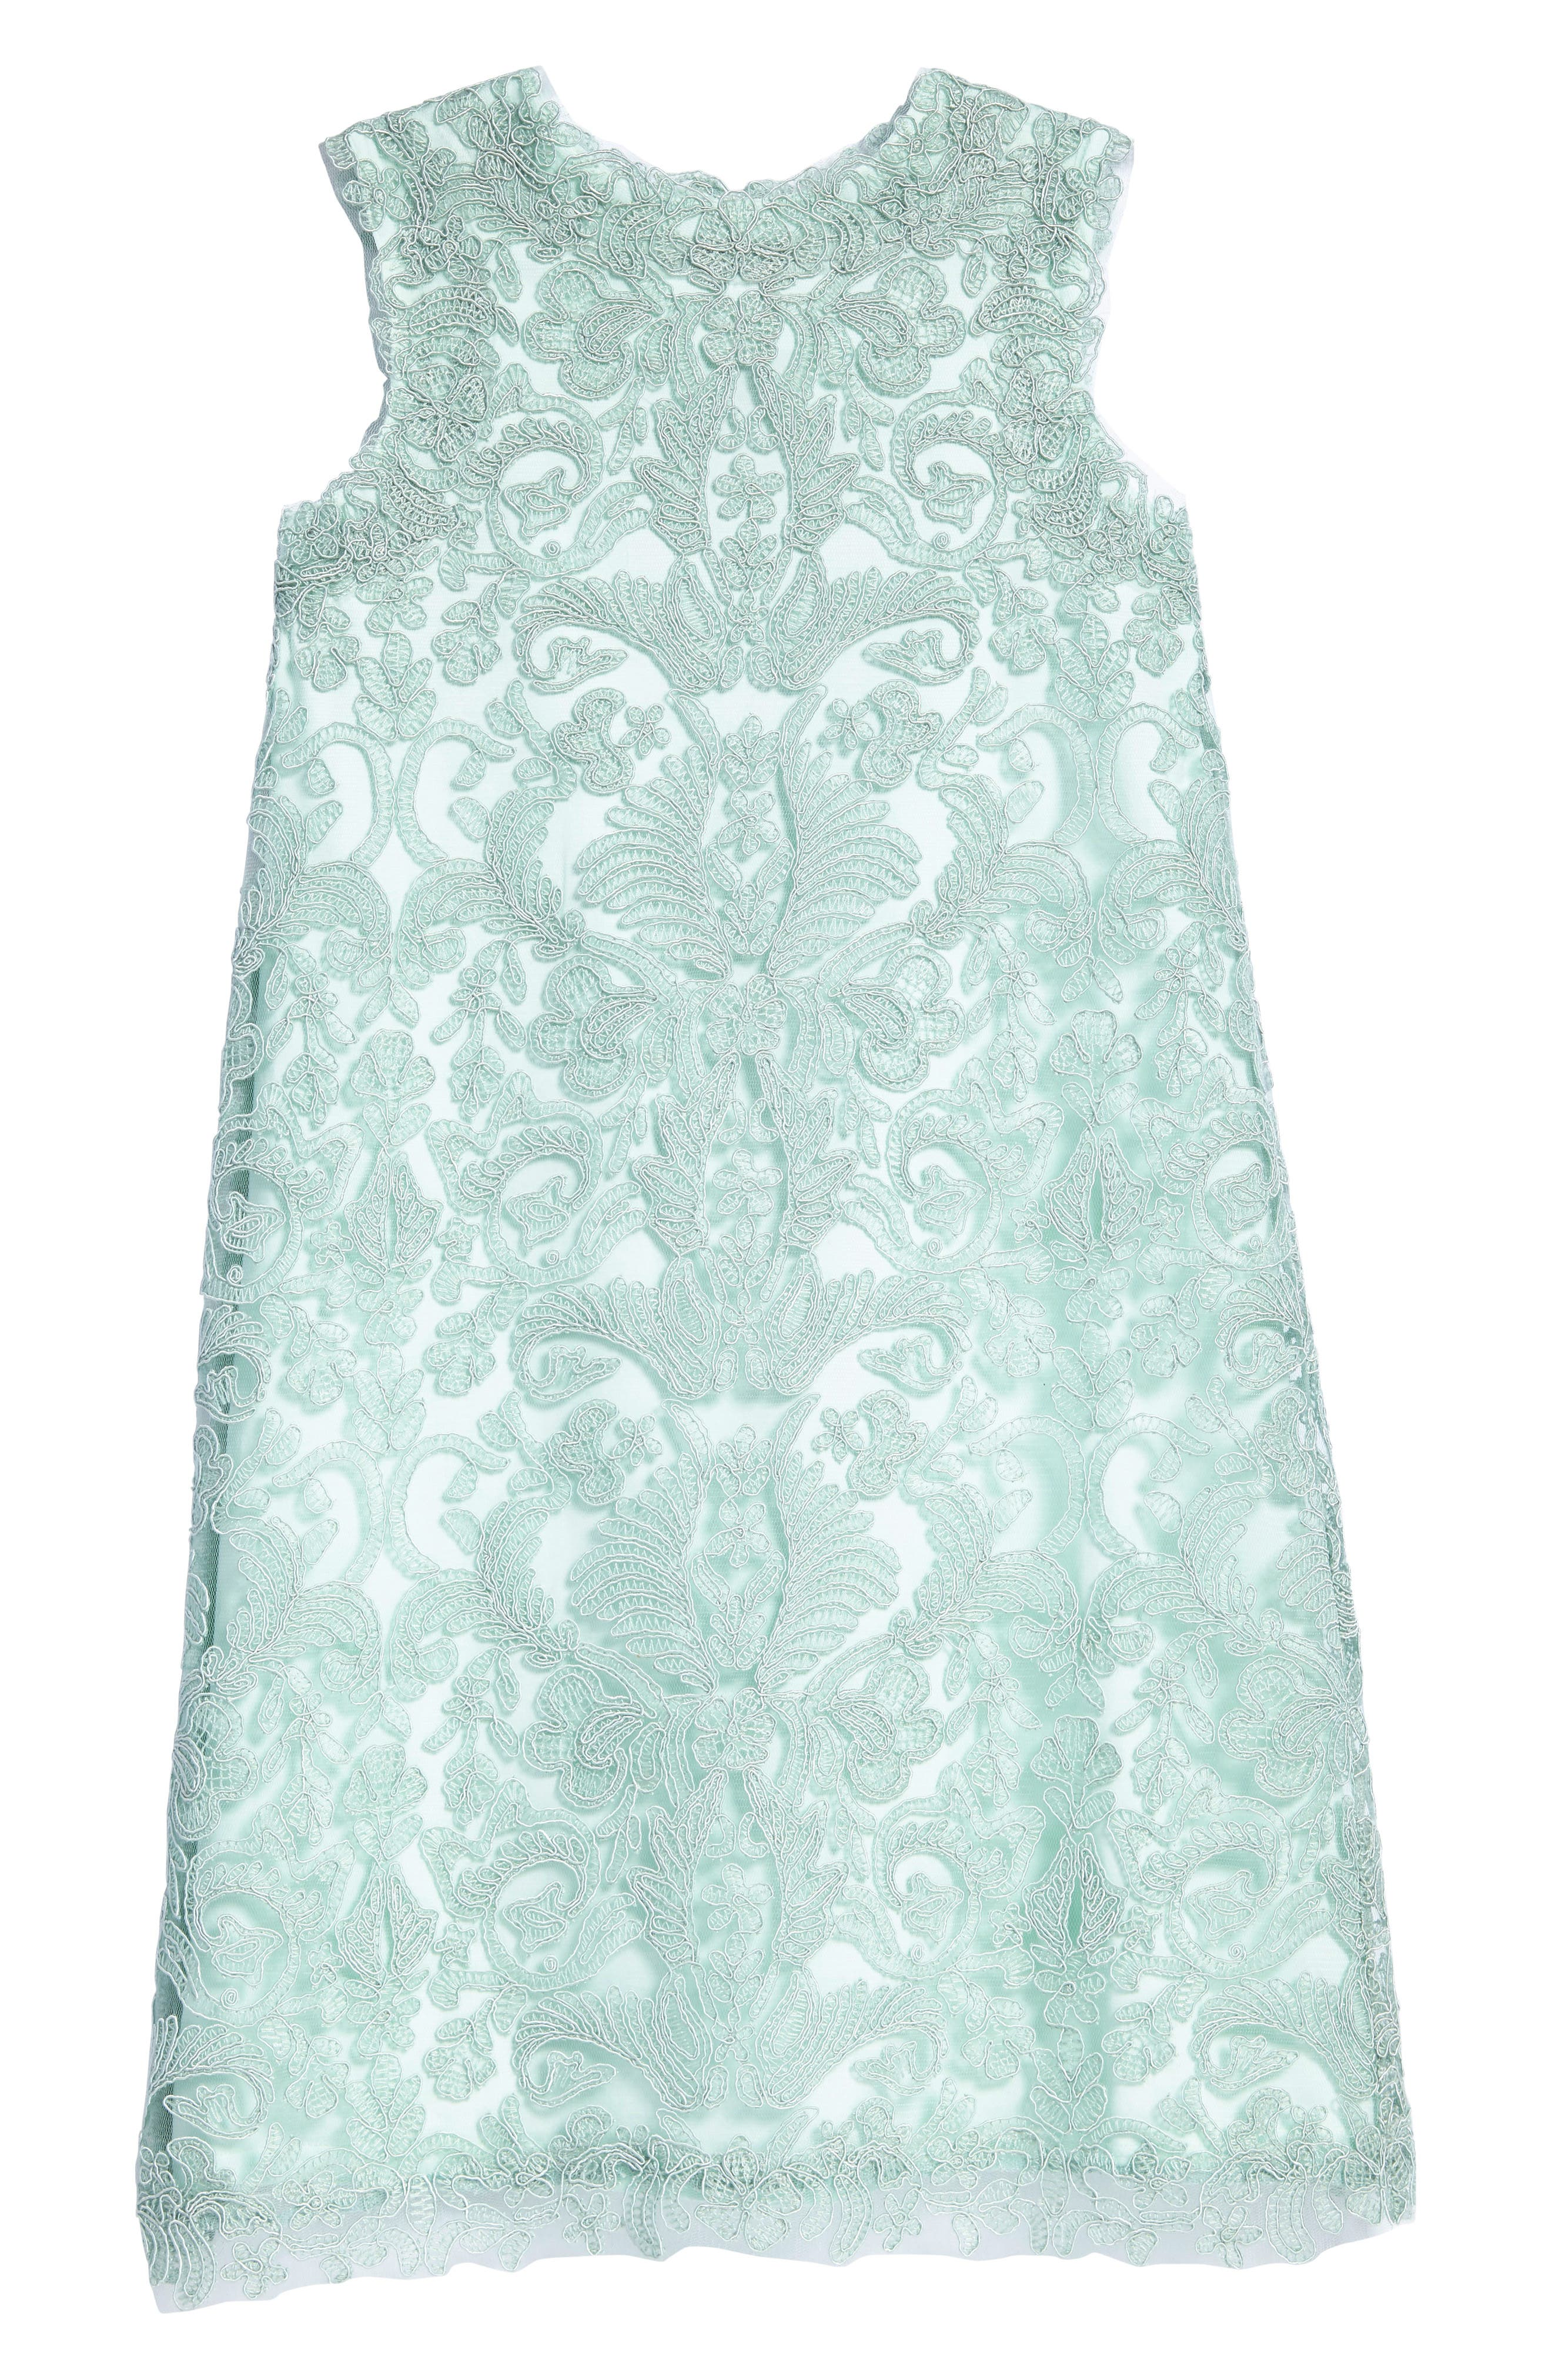 Tadashi Shoji 'Honeysuckle' Embroidered Tulle Dress (Toddler Girls, Little Girls & Big Girls)